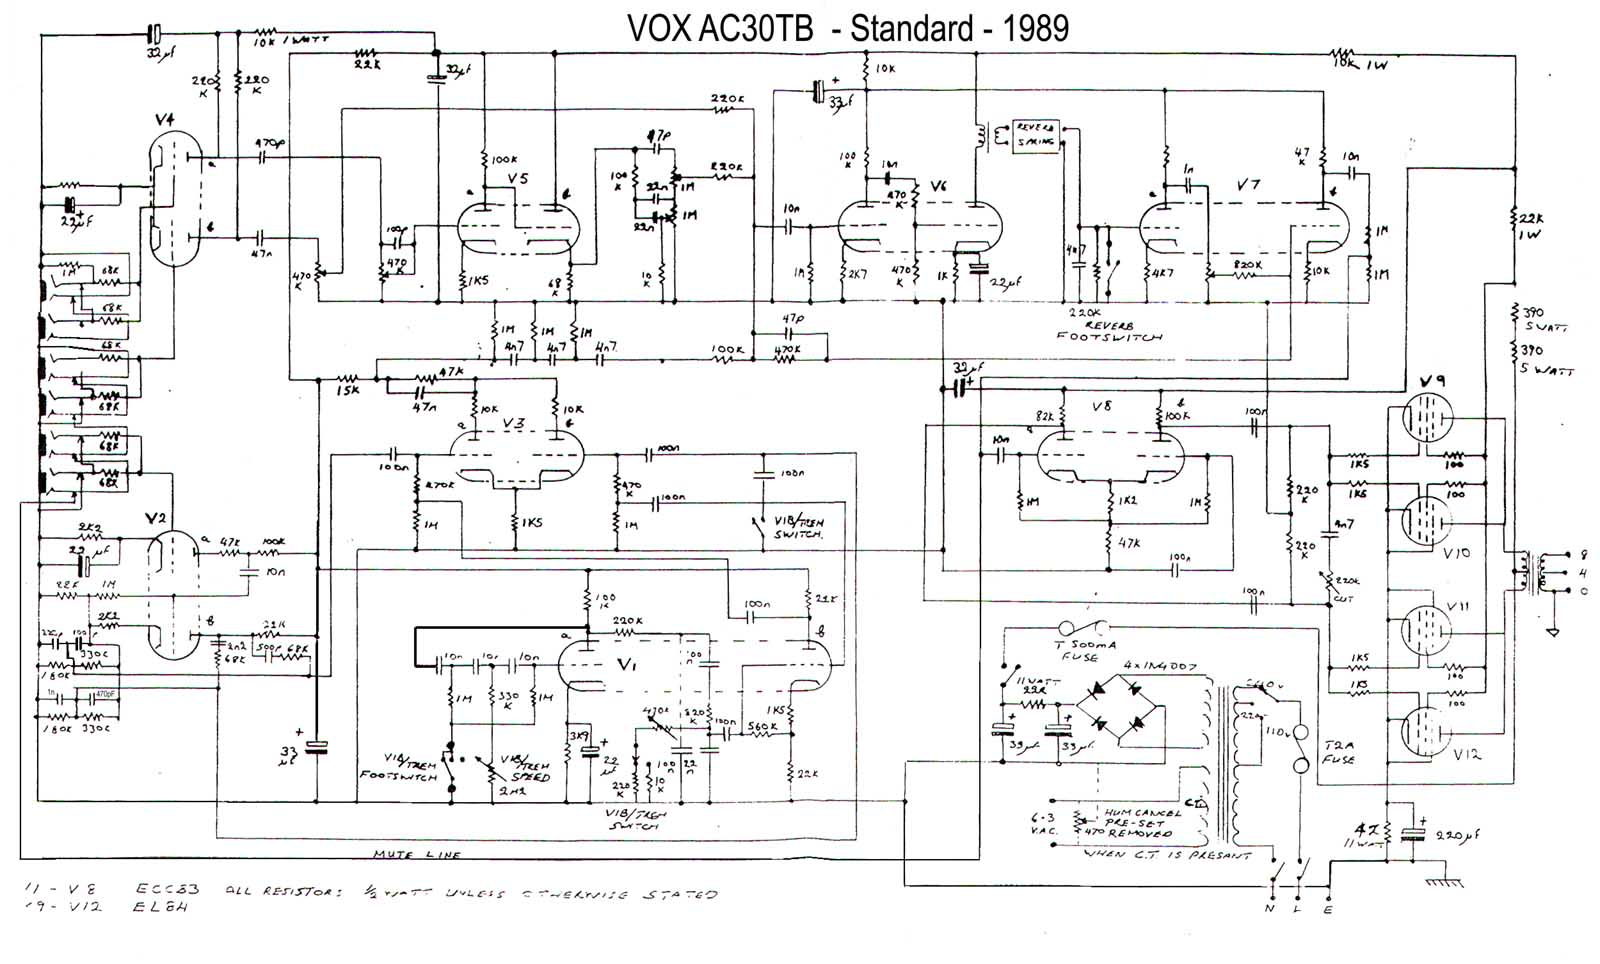 Vox Vintage Circuit Diagrams Diagram Of A Single Pole Light Switch Free Download Wiring Ac30 Top Boost 1989